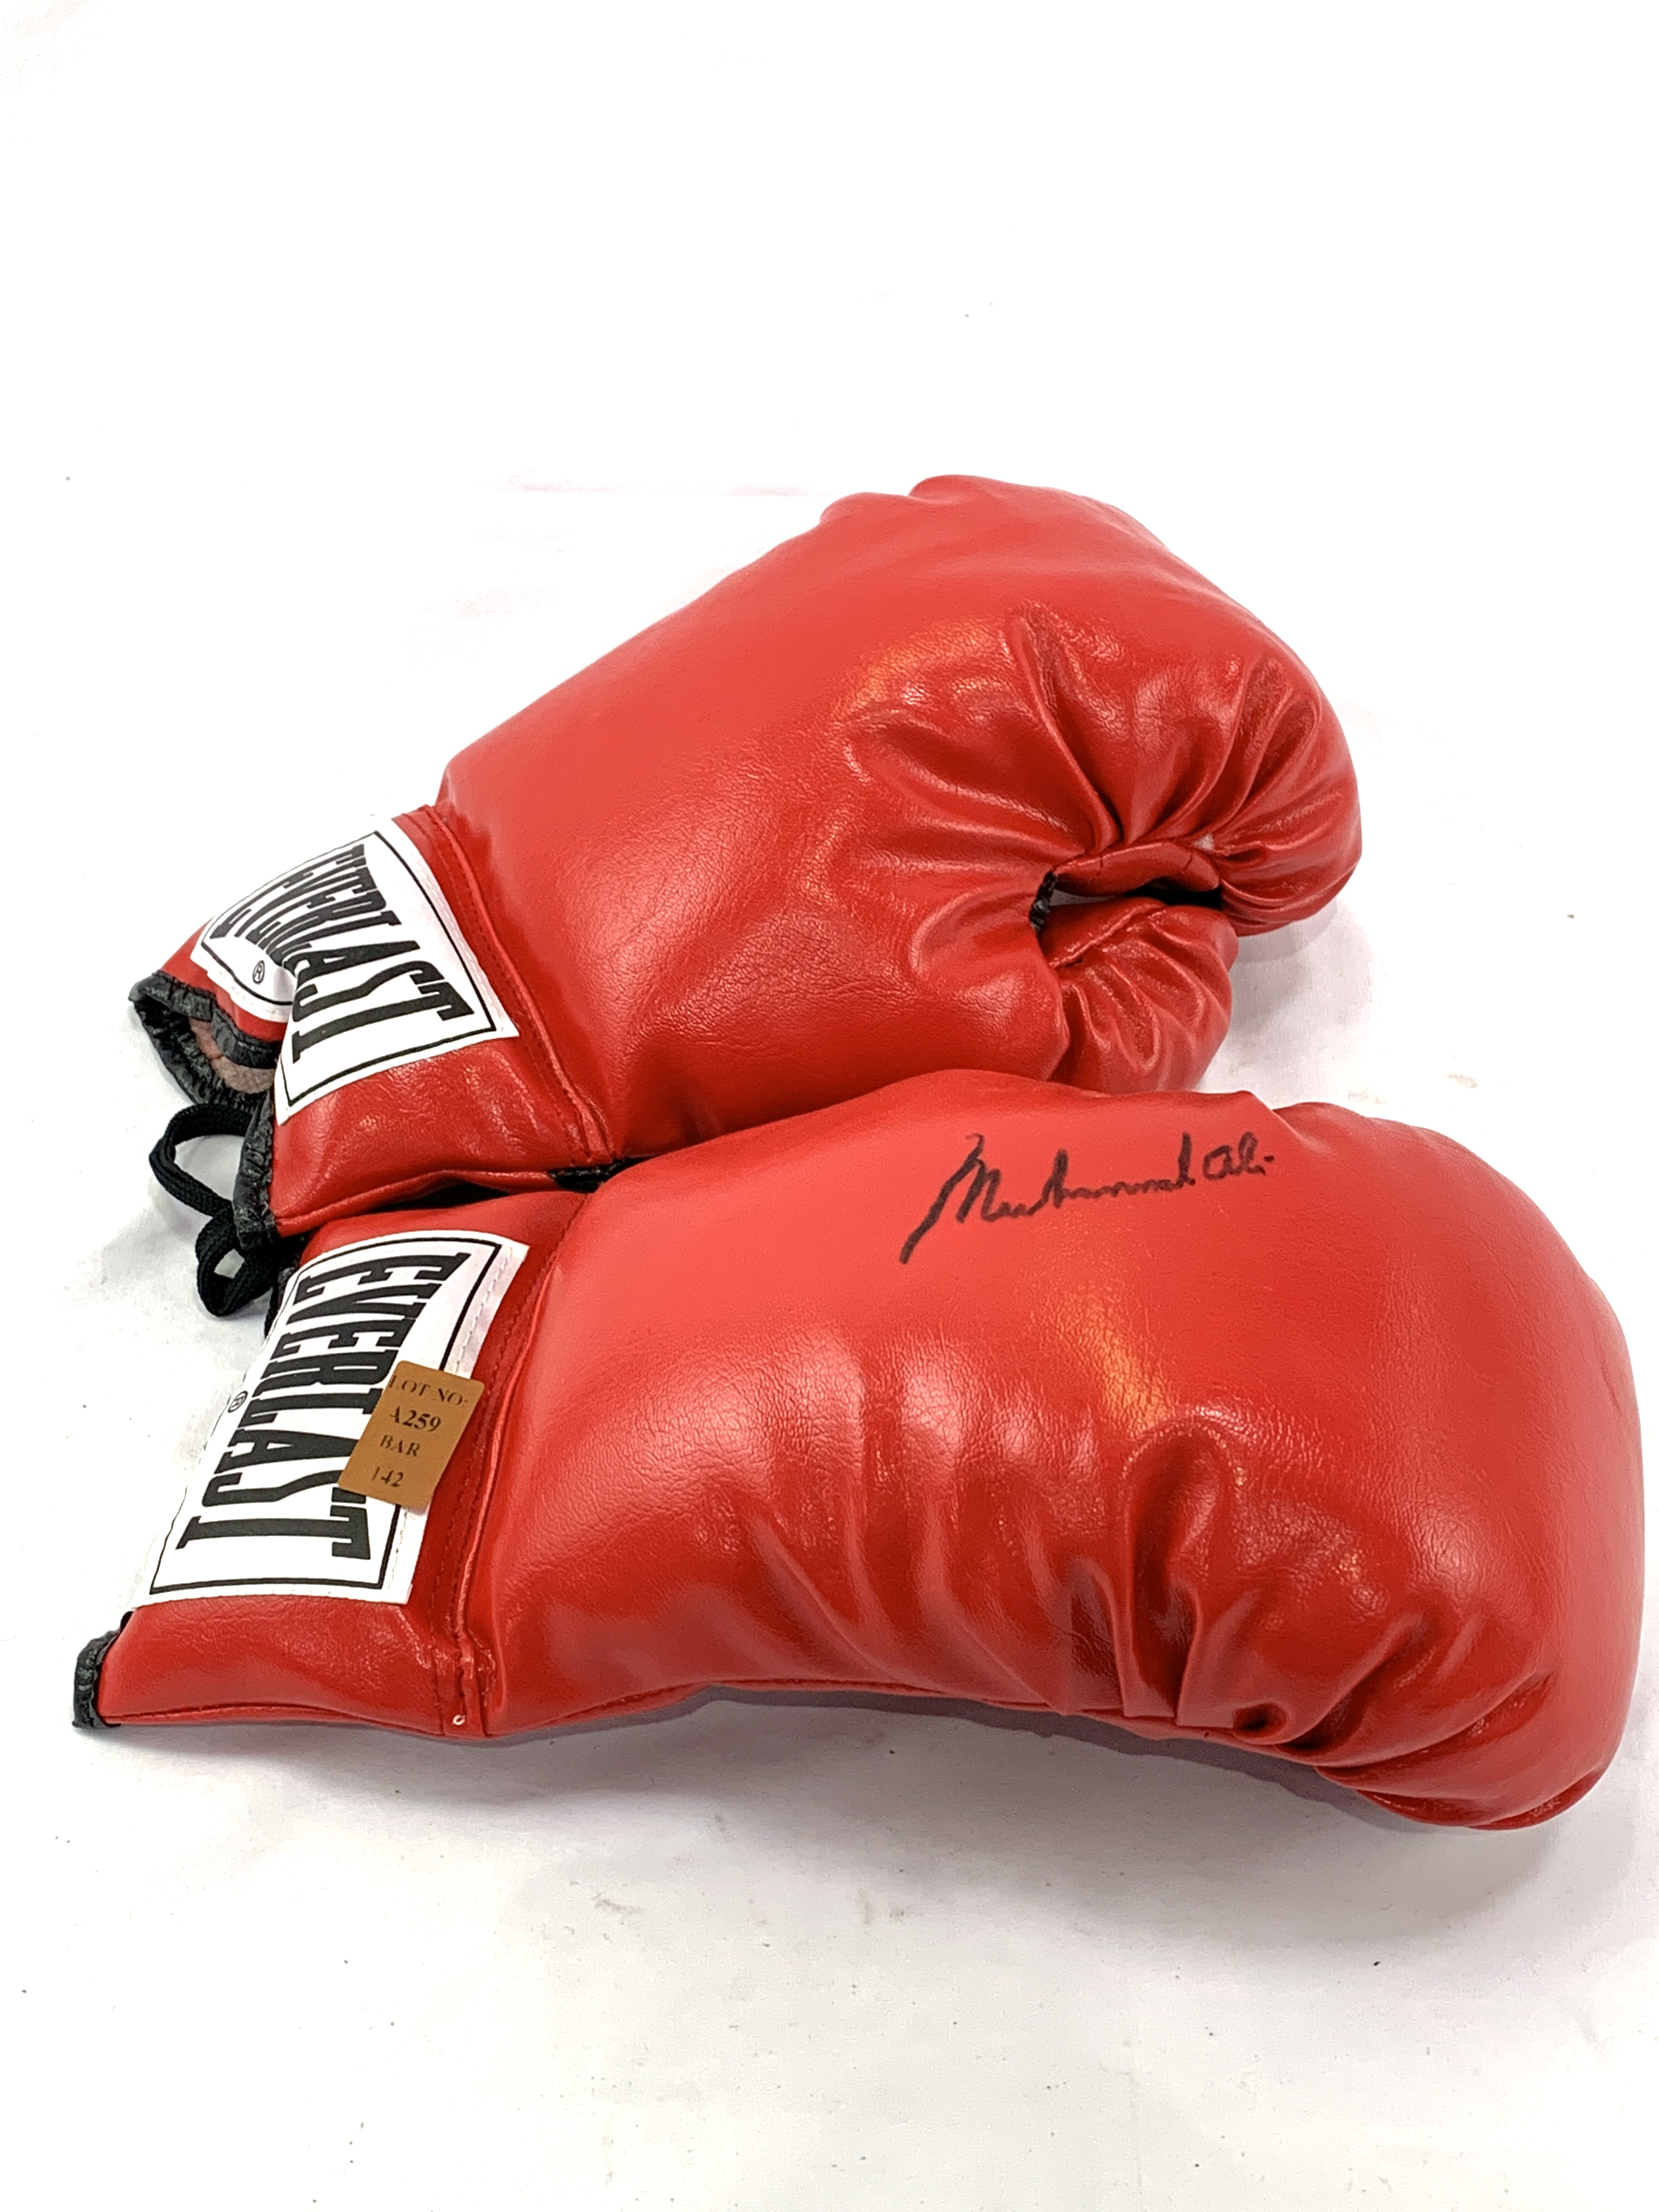 Pair of red Everlast boxing gloves, one signed Muhammad Ali